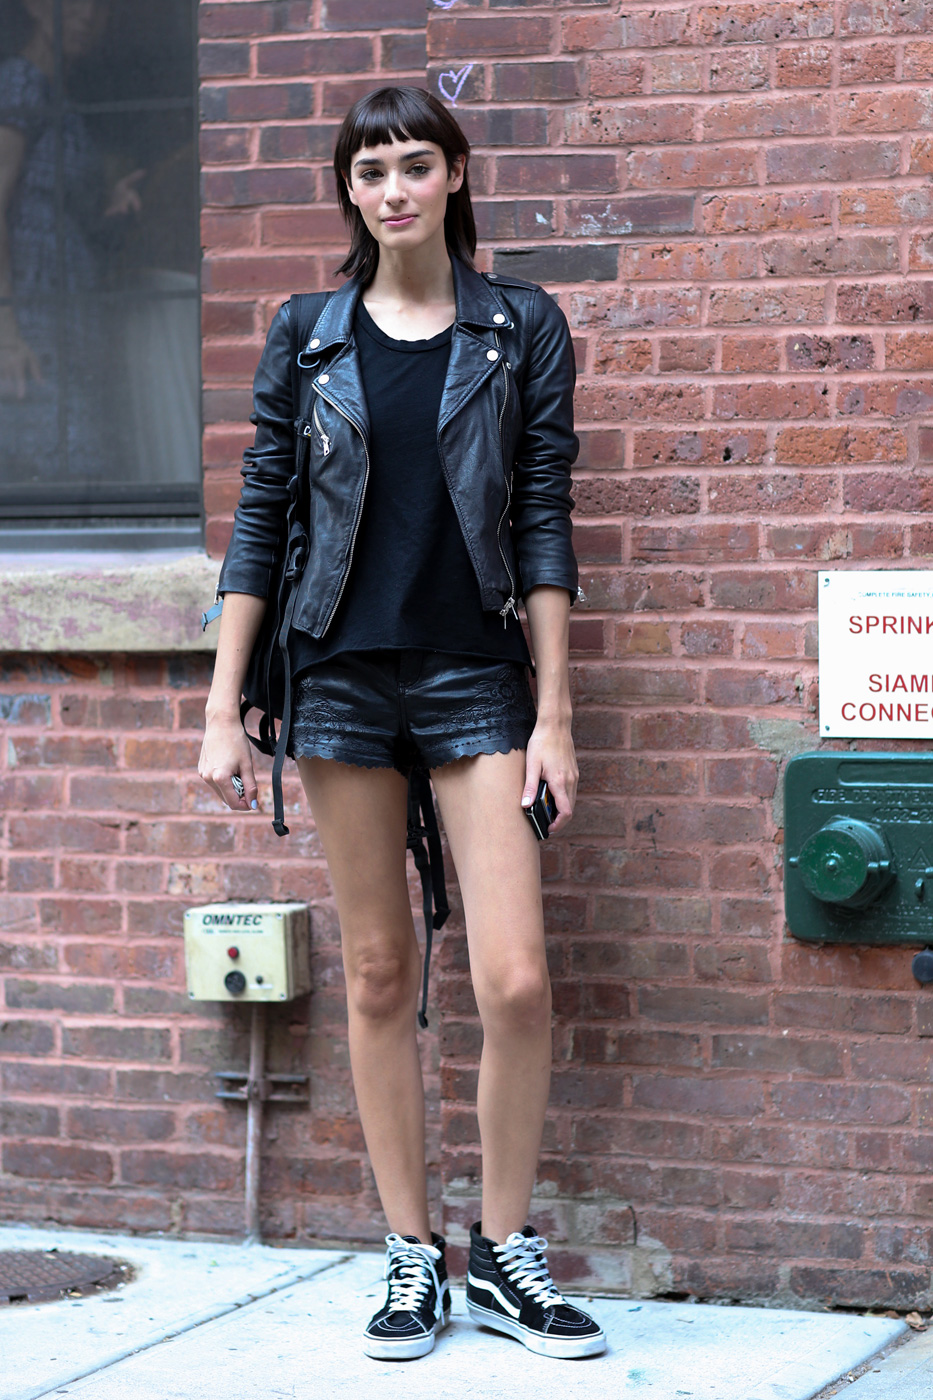 leather jackets for women | the newfound love of females